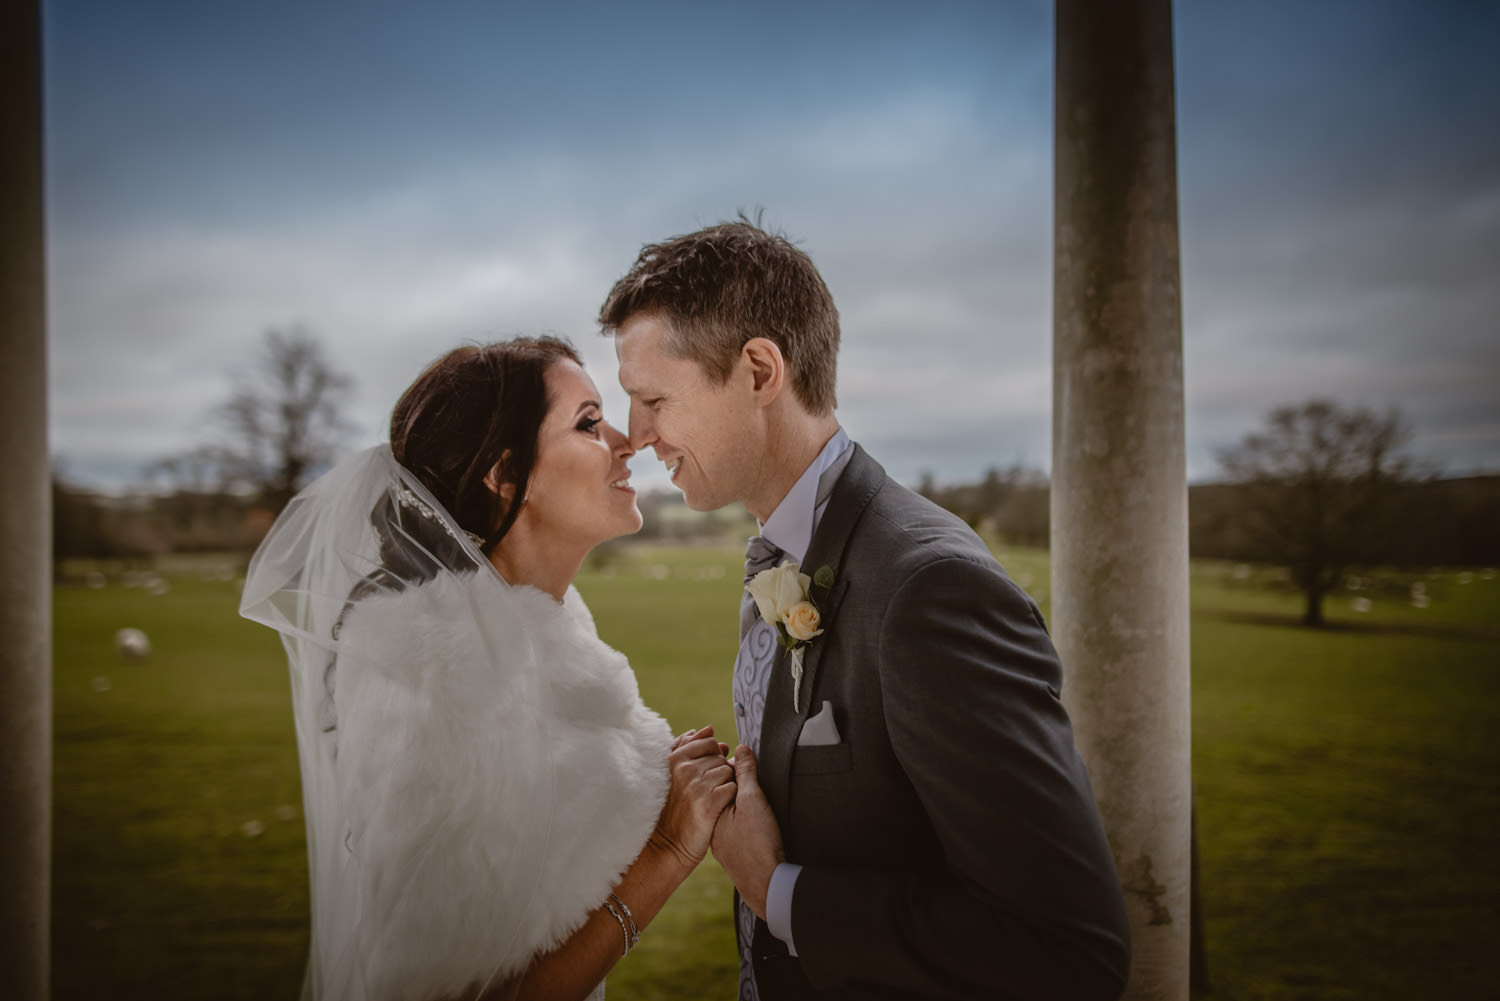 CLICK TO SEE THEIR WEDDING - FROYLE PARK, HAMPSHIRE